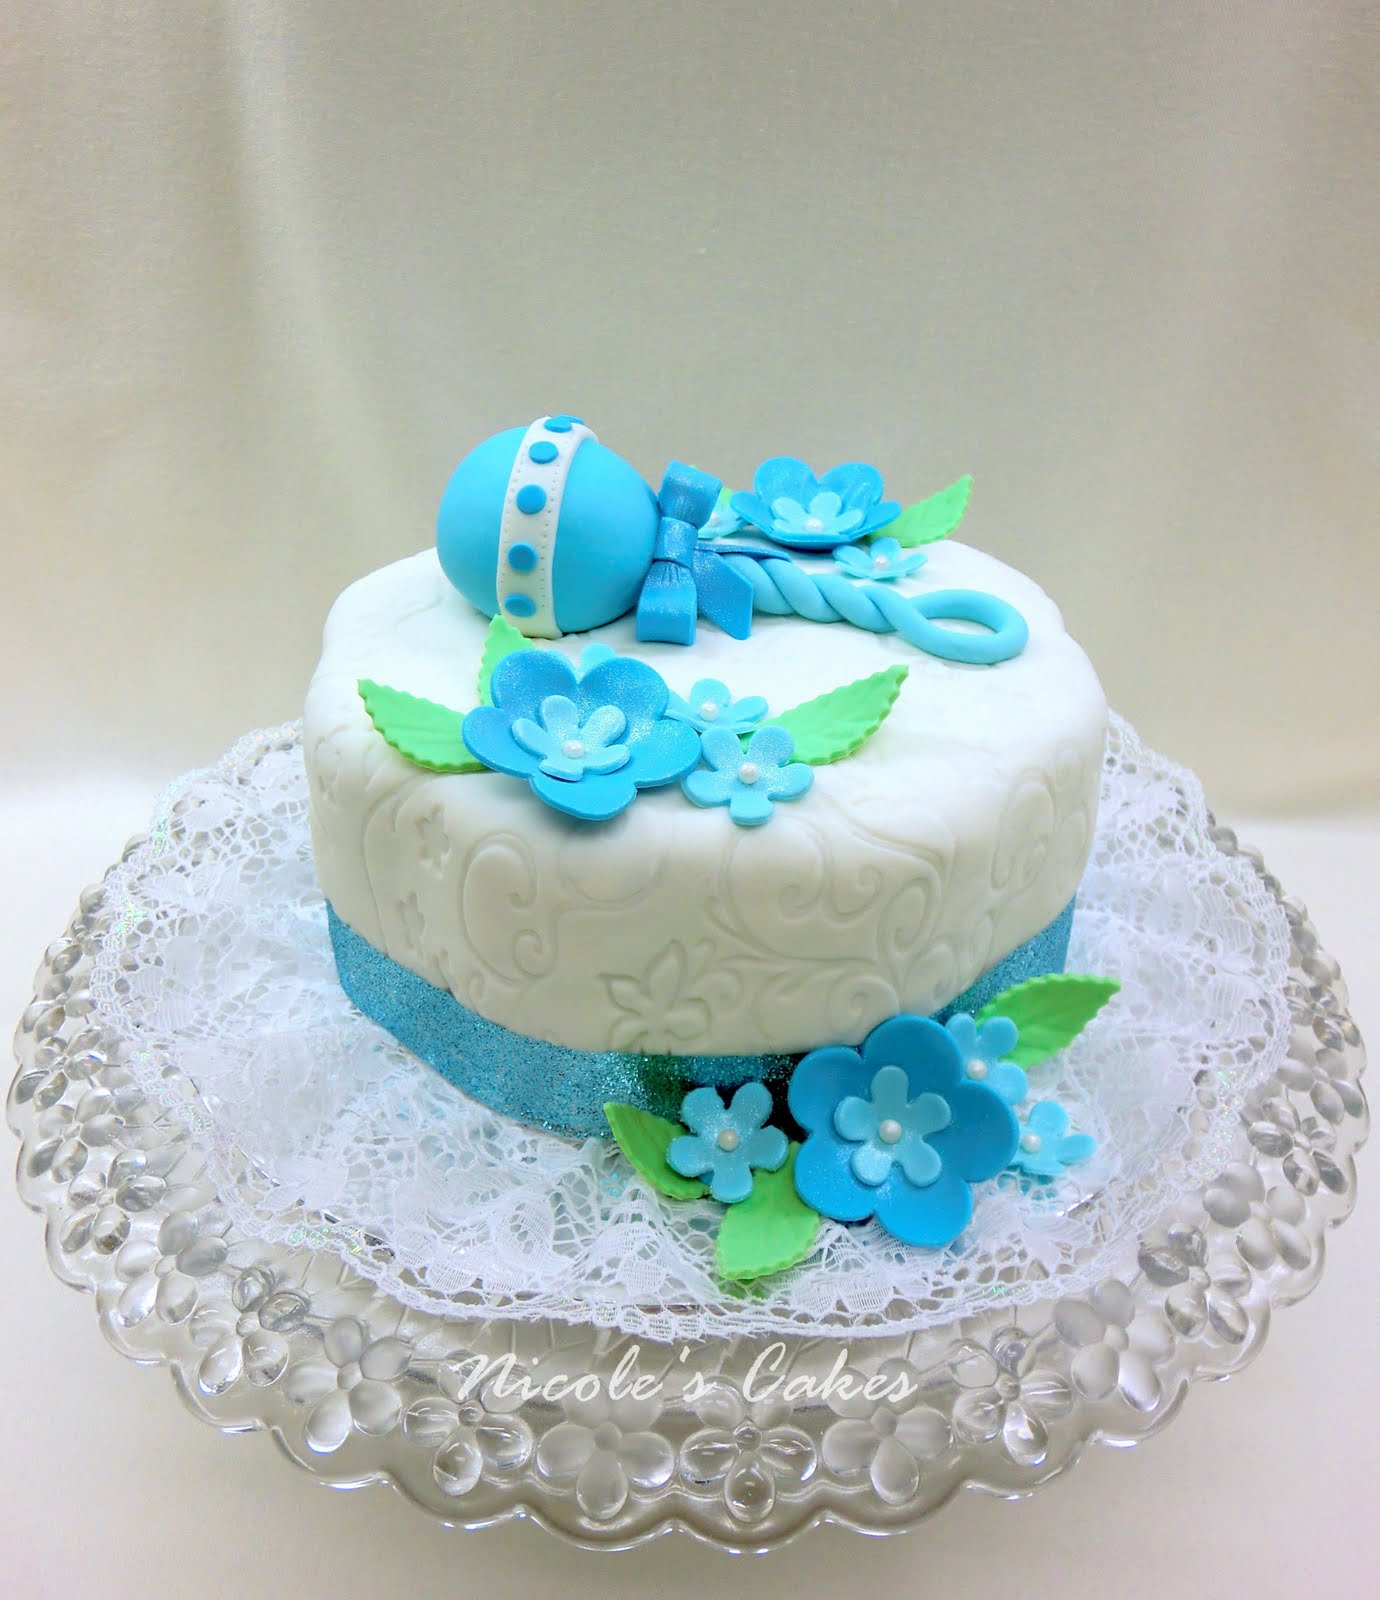 confections cakes creations beautiful blue baby shower cake